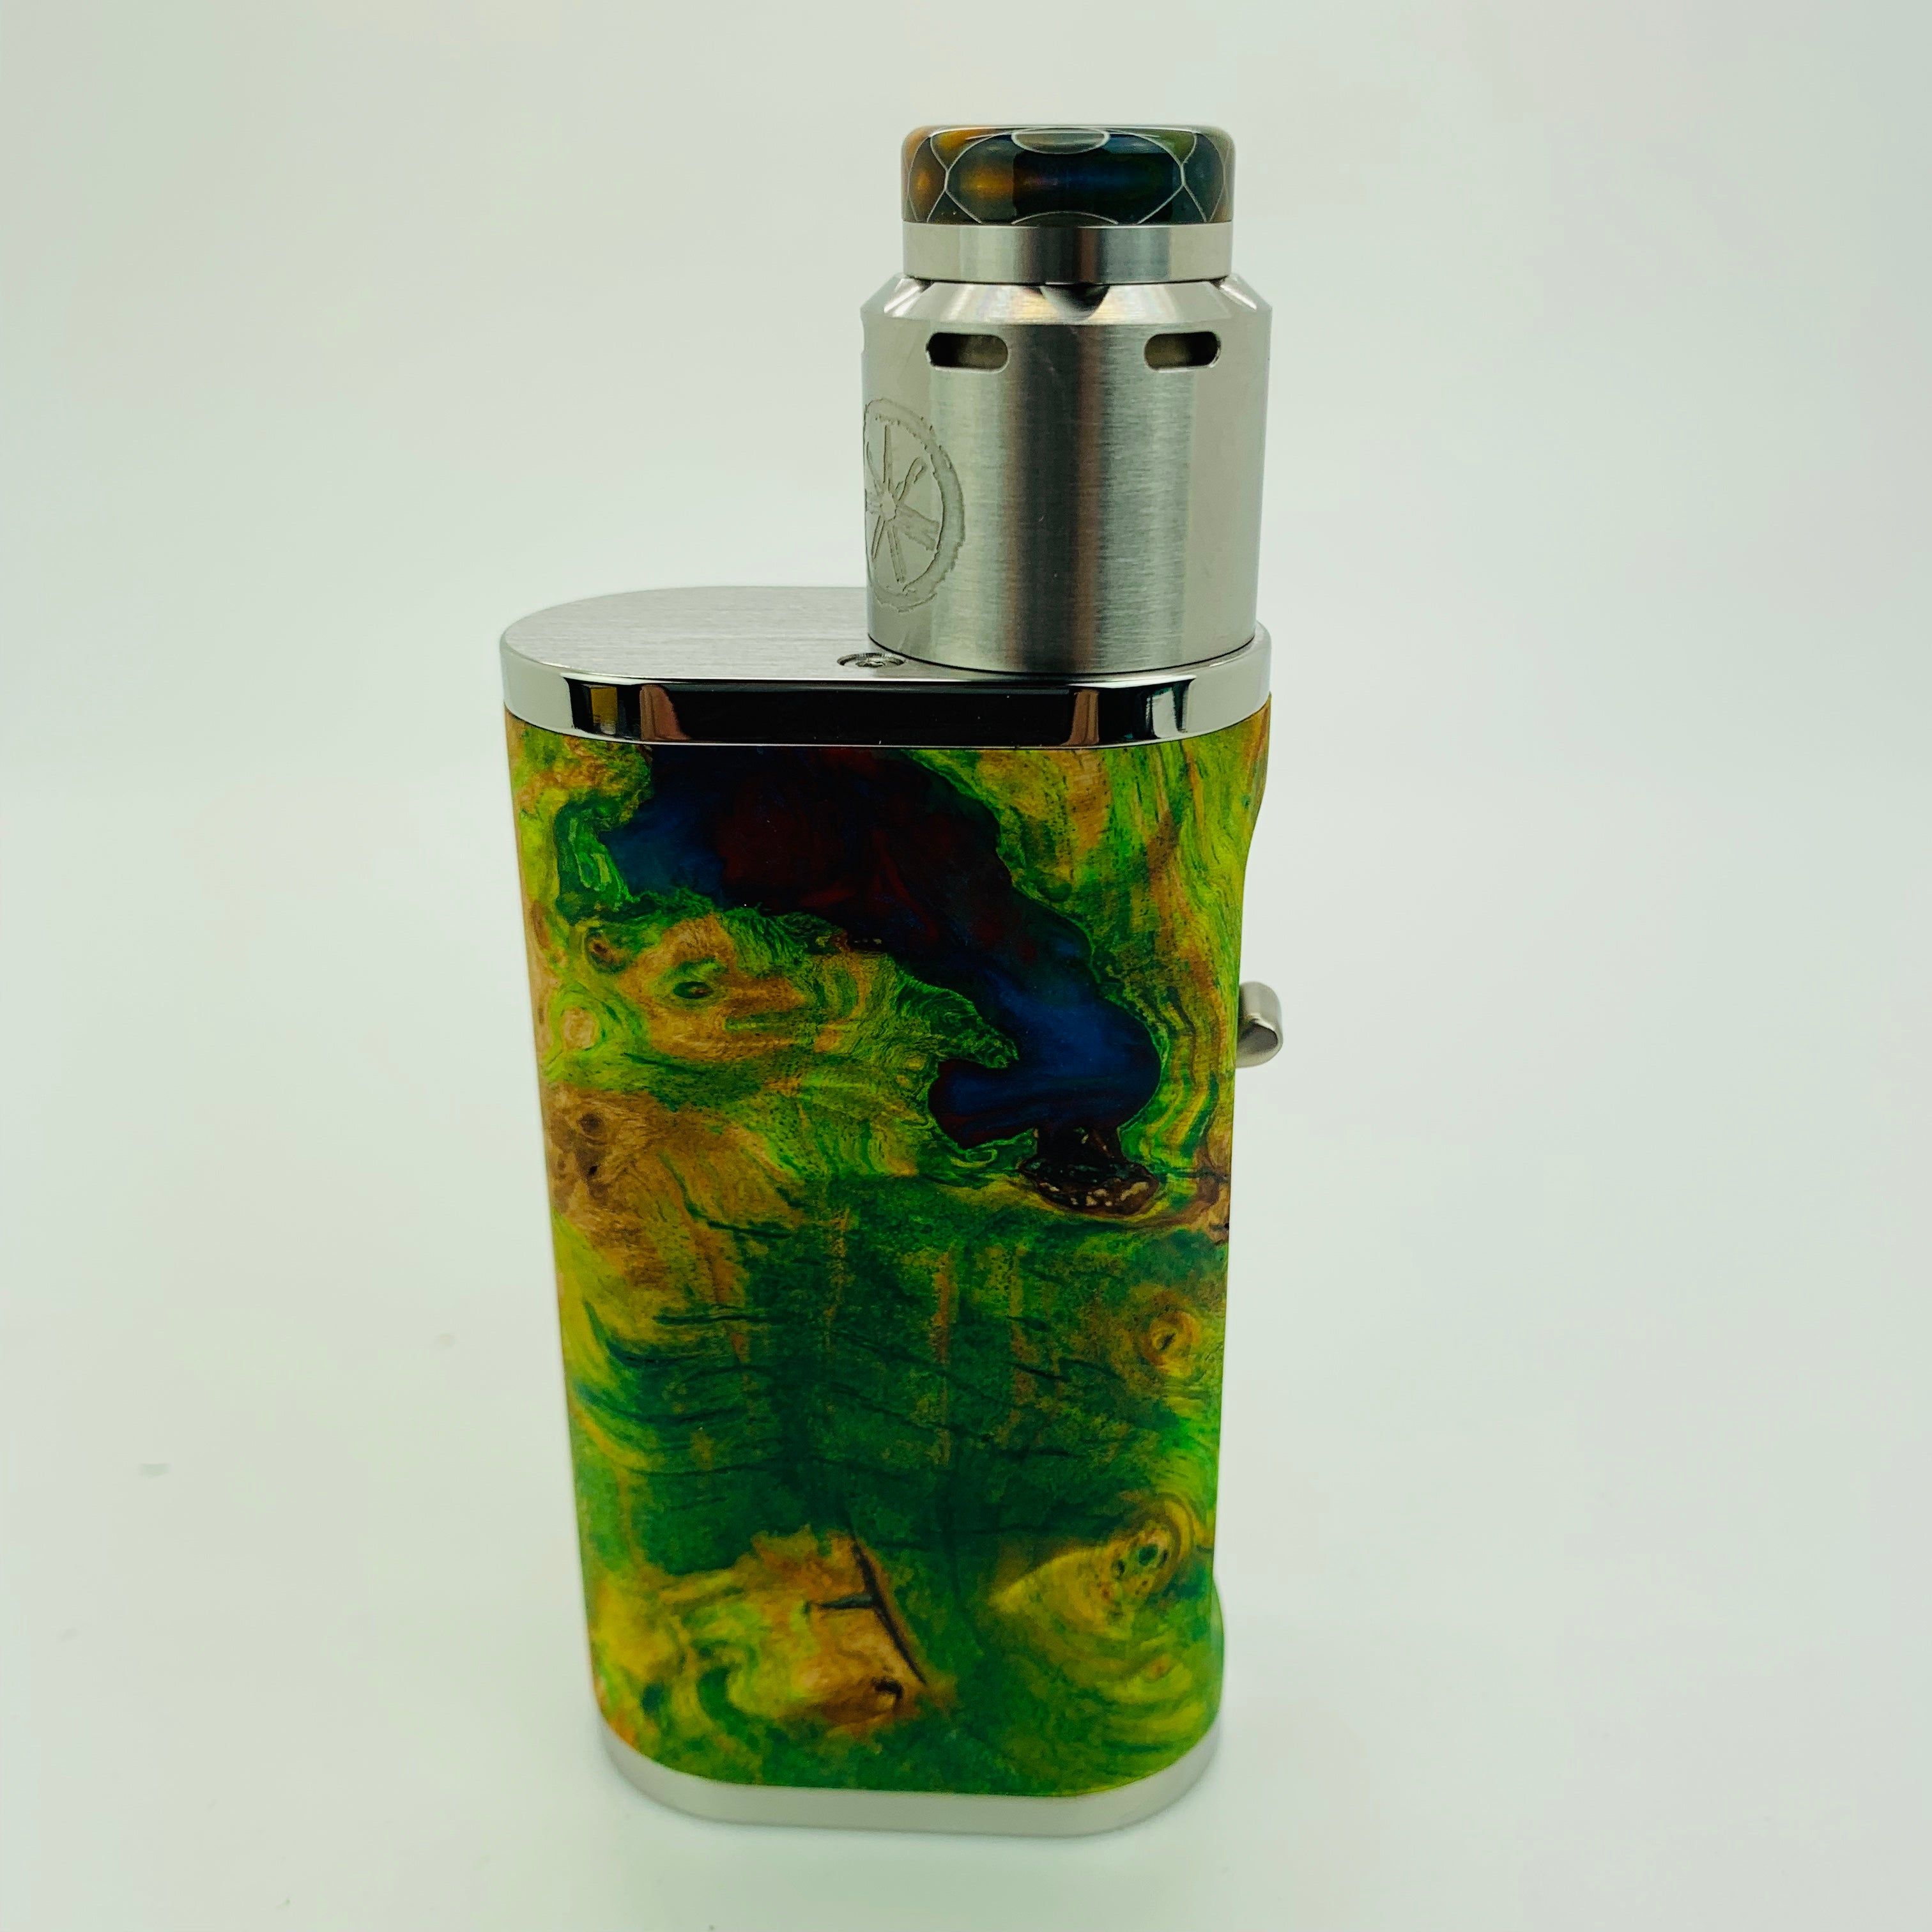 1 of 1 Pumper 18 Squonk Kit with .Blank RDA and Honeycomb Drip Tip #K11